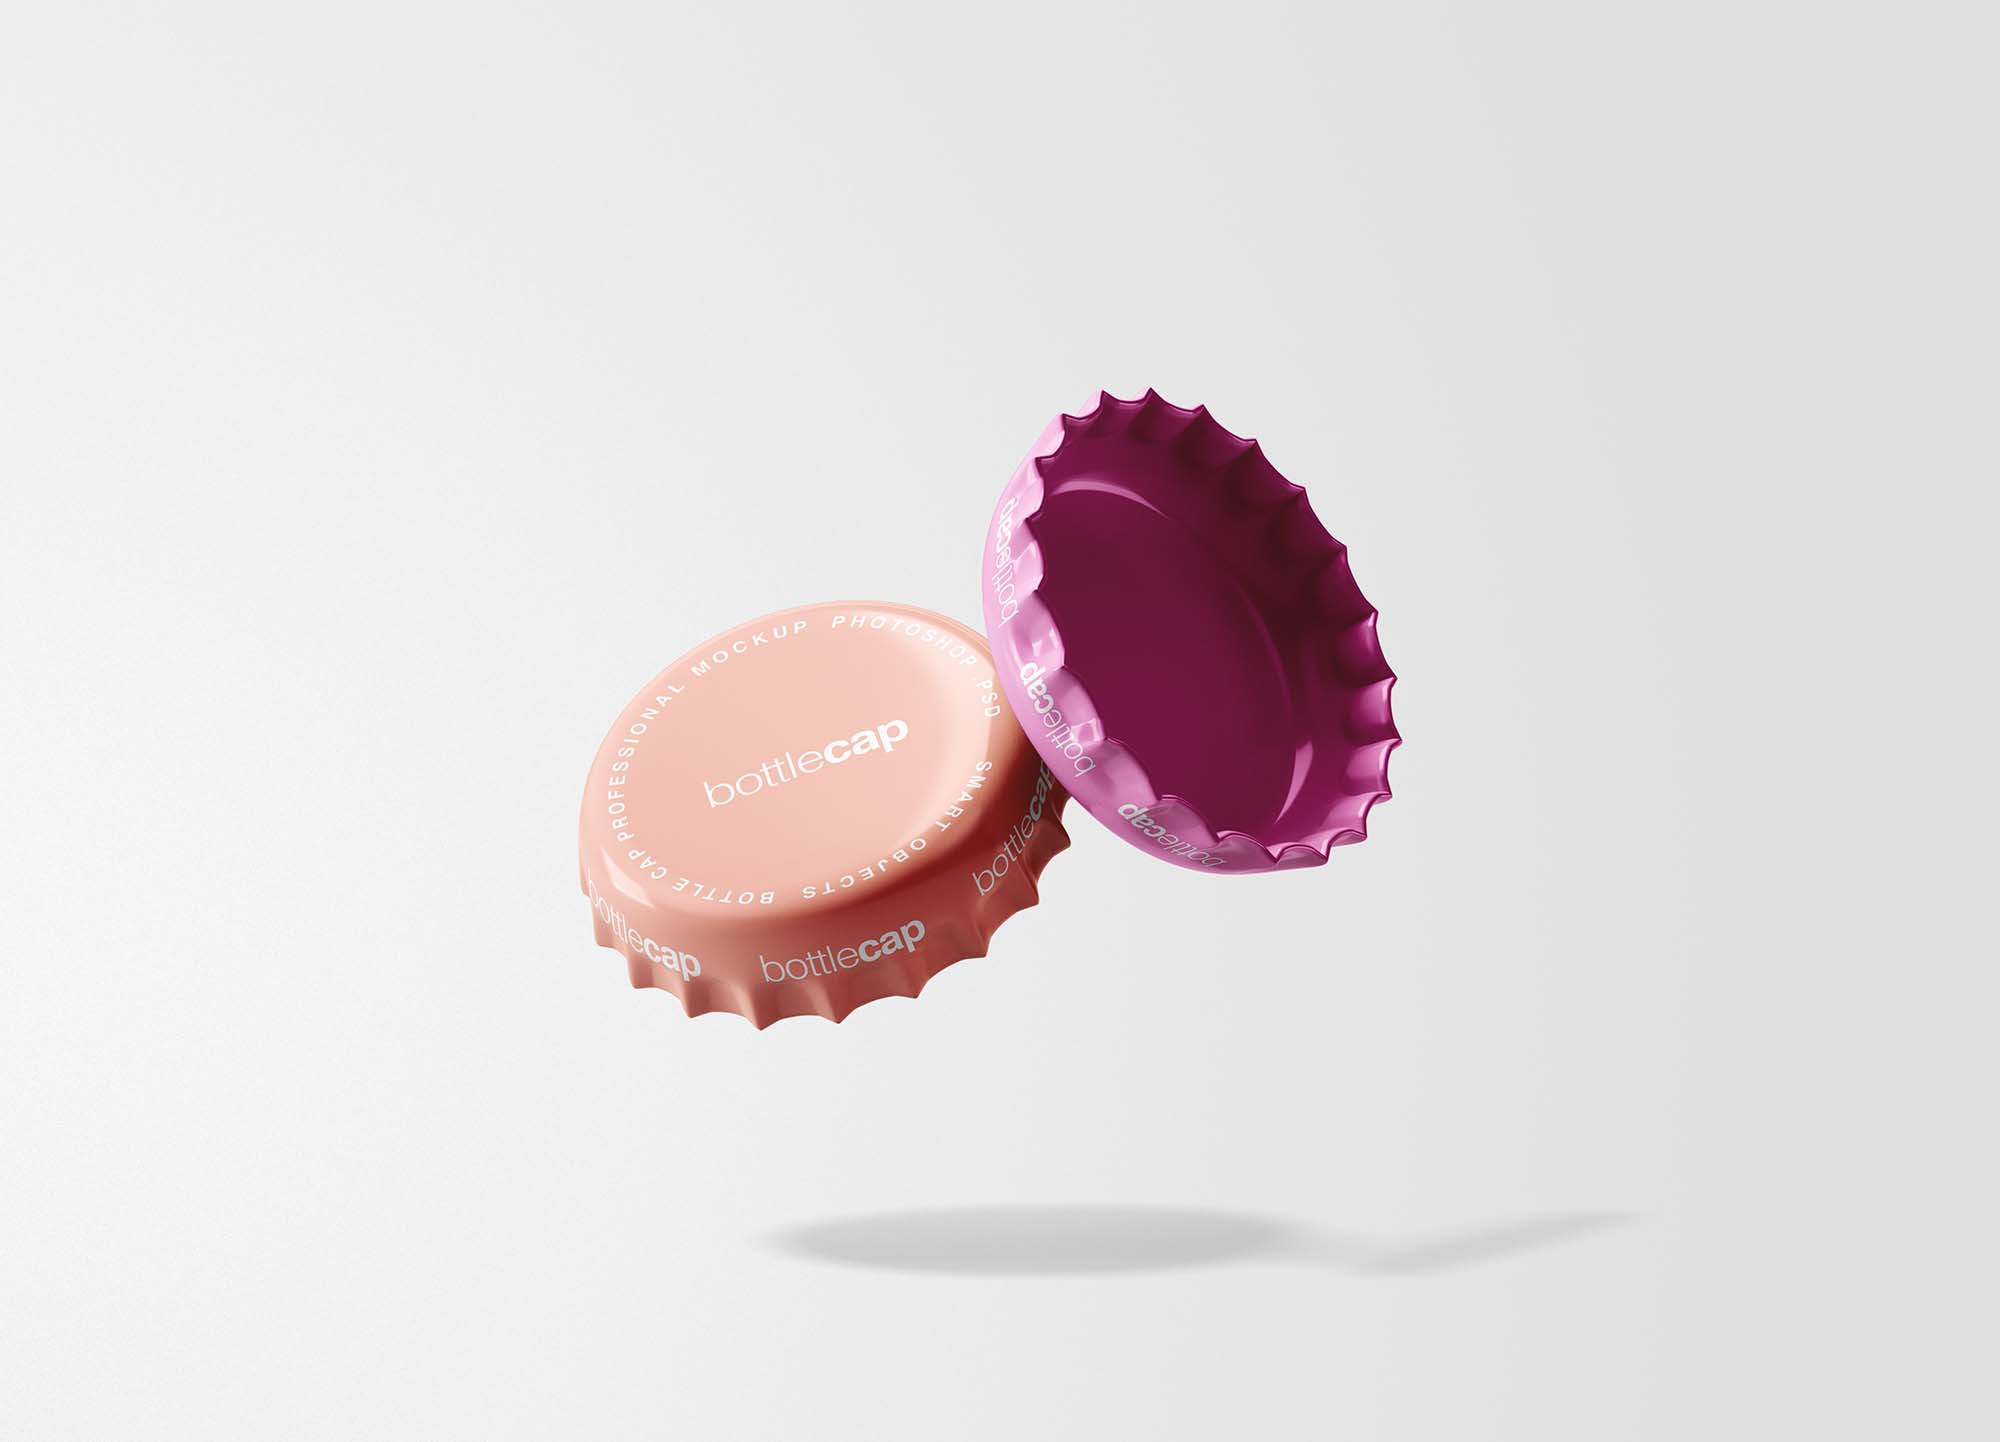 Free Bottle Cap Mockup